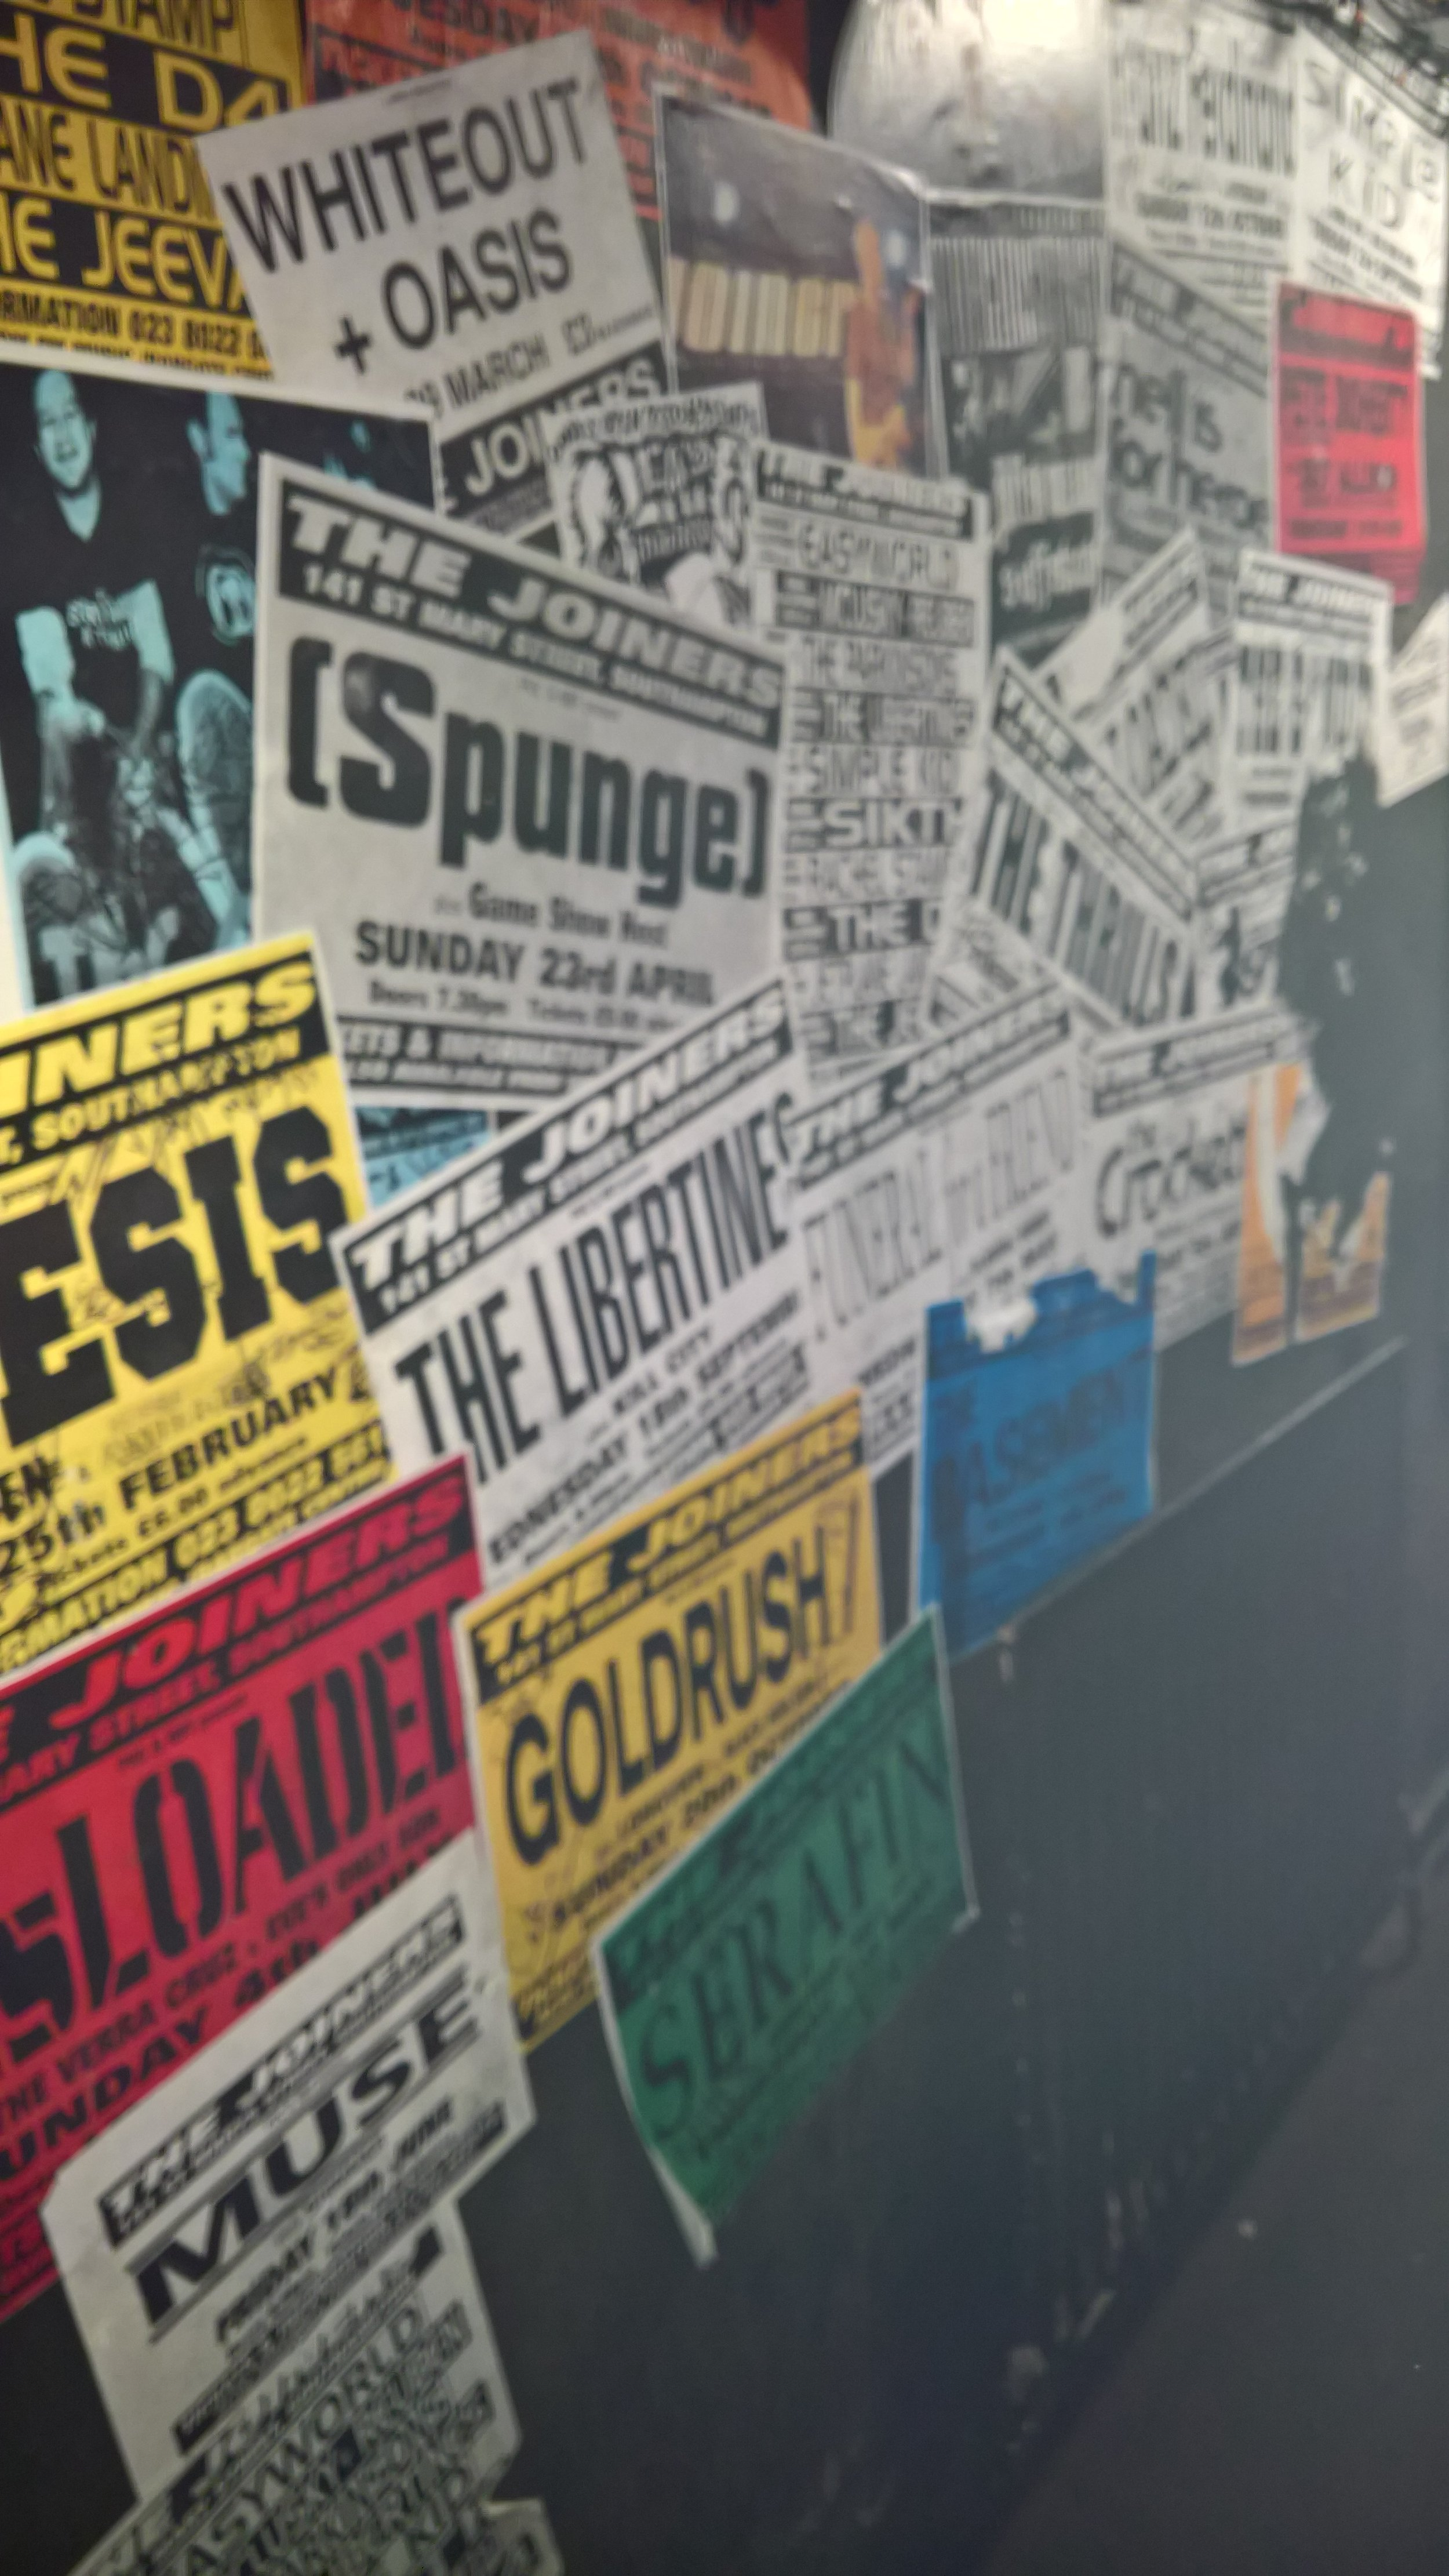 Some of the bands that have played at The Joiners.